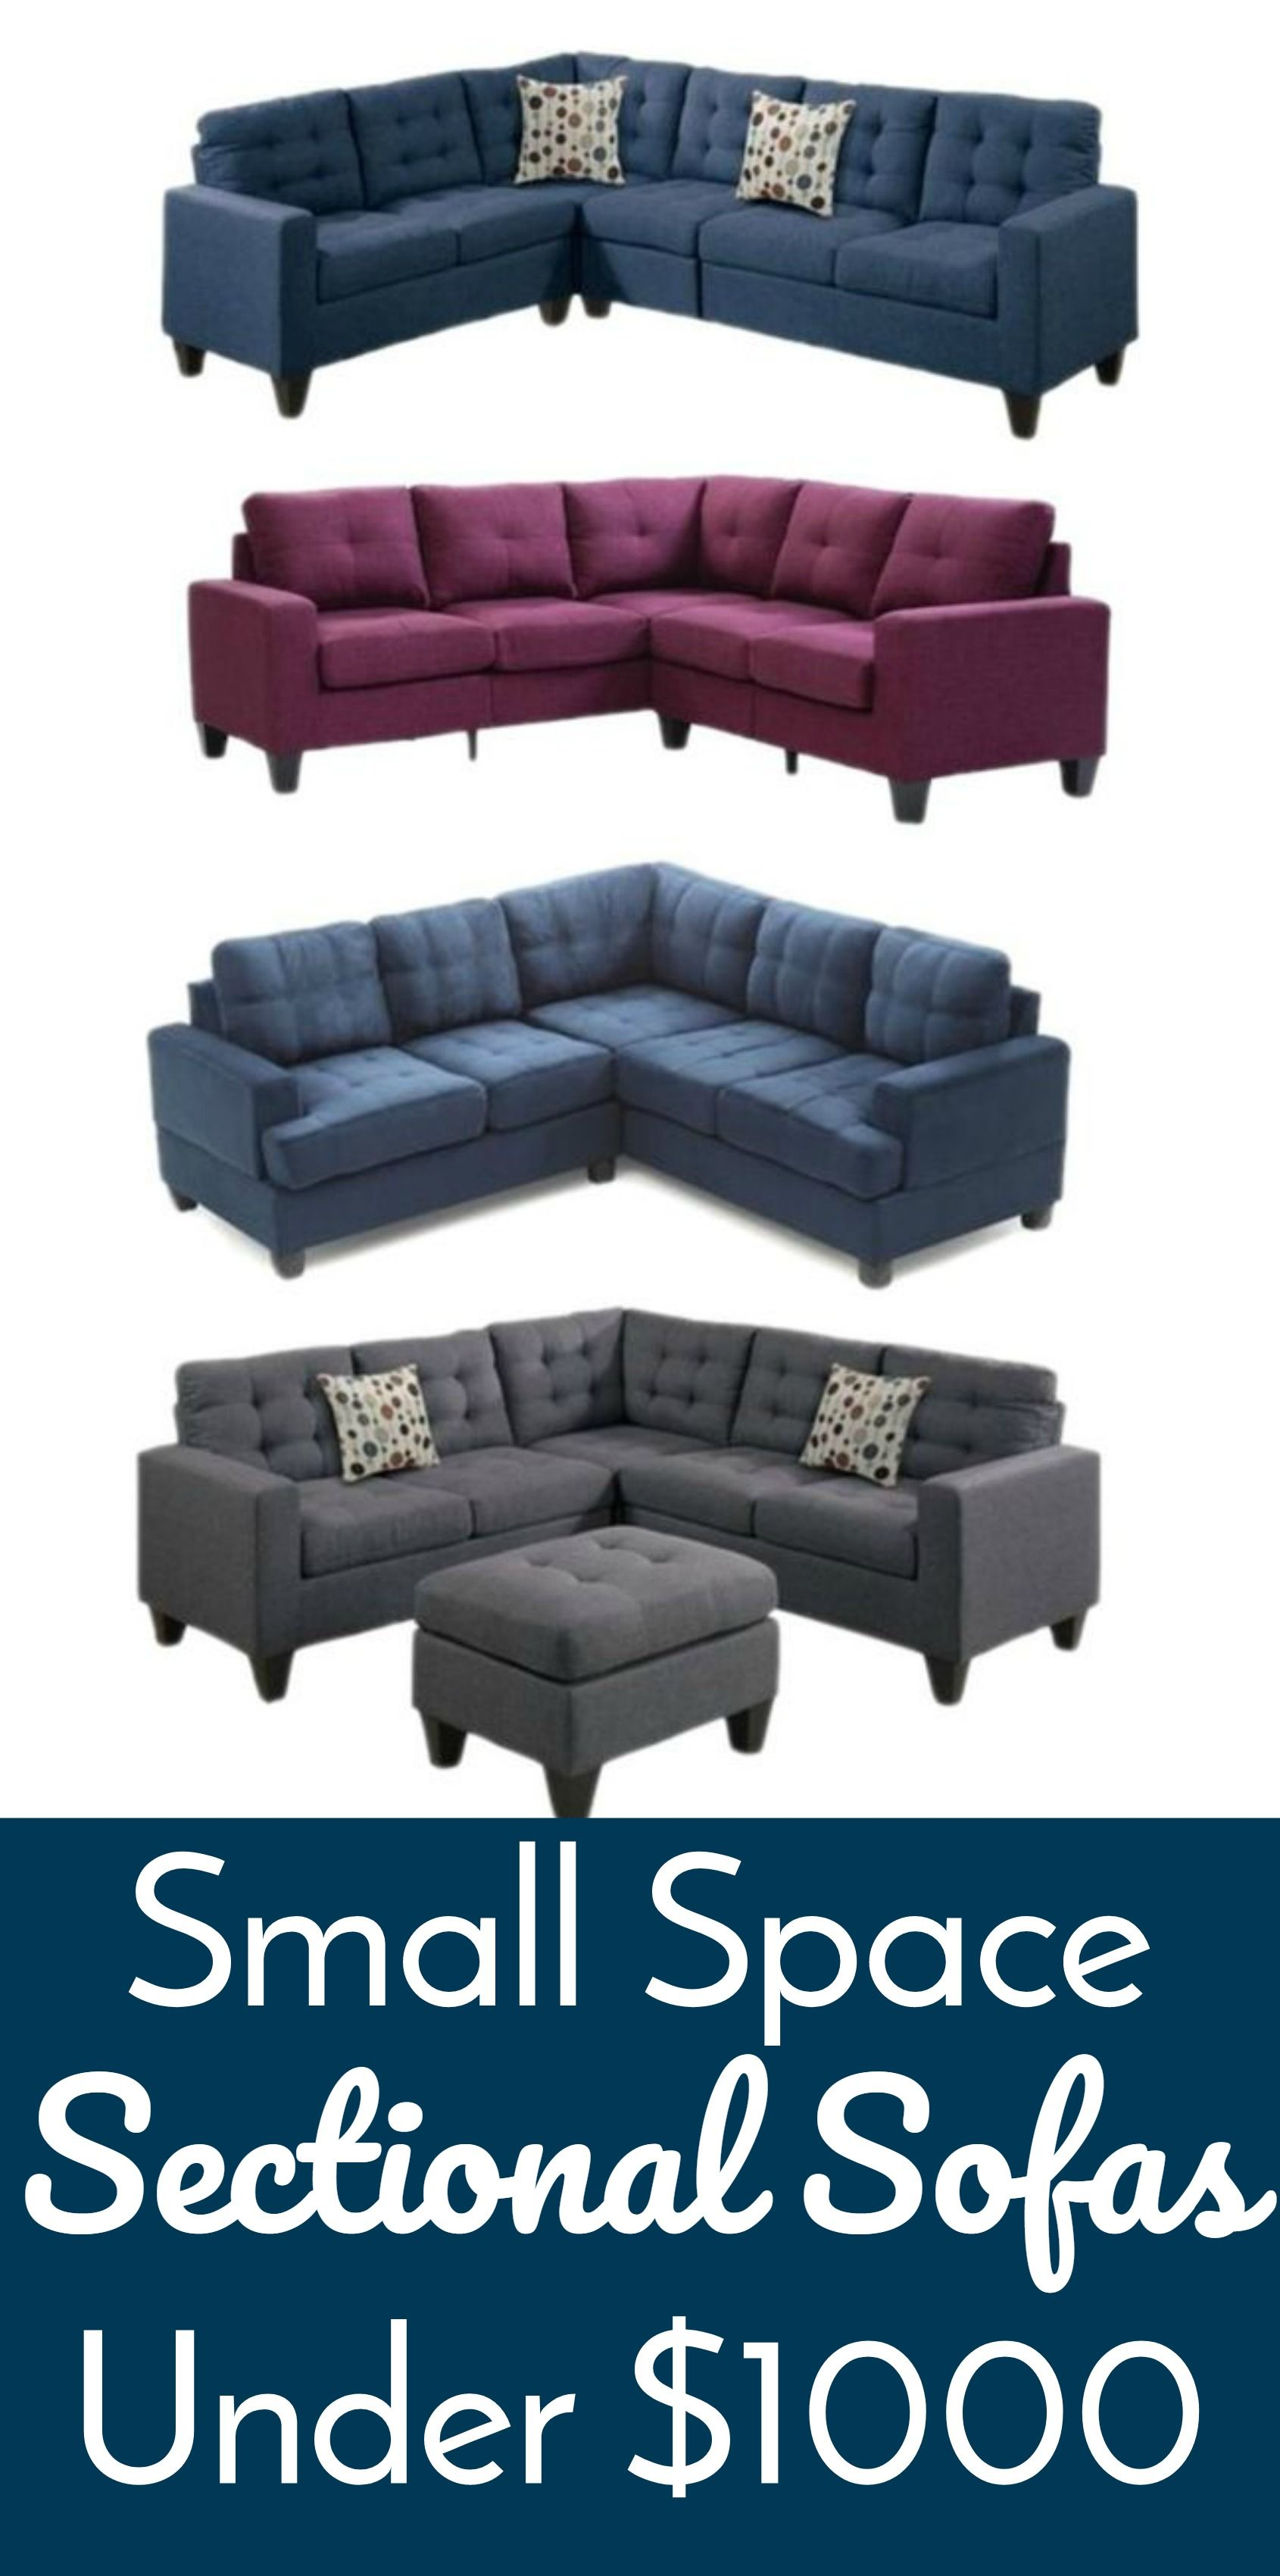 Superbe Small Space Sectional Sofas Under $1000